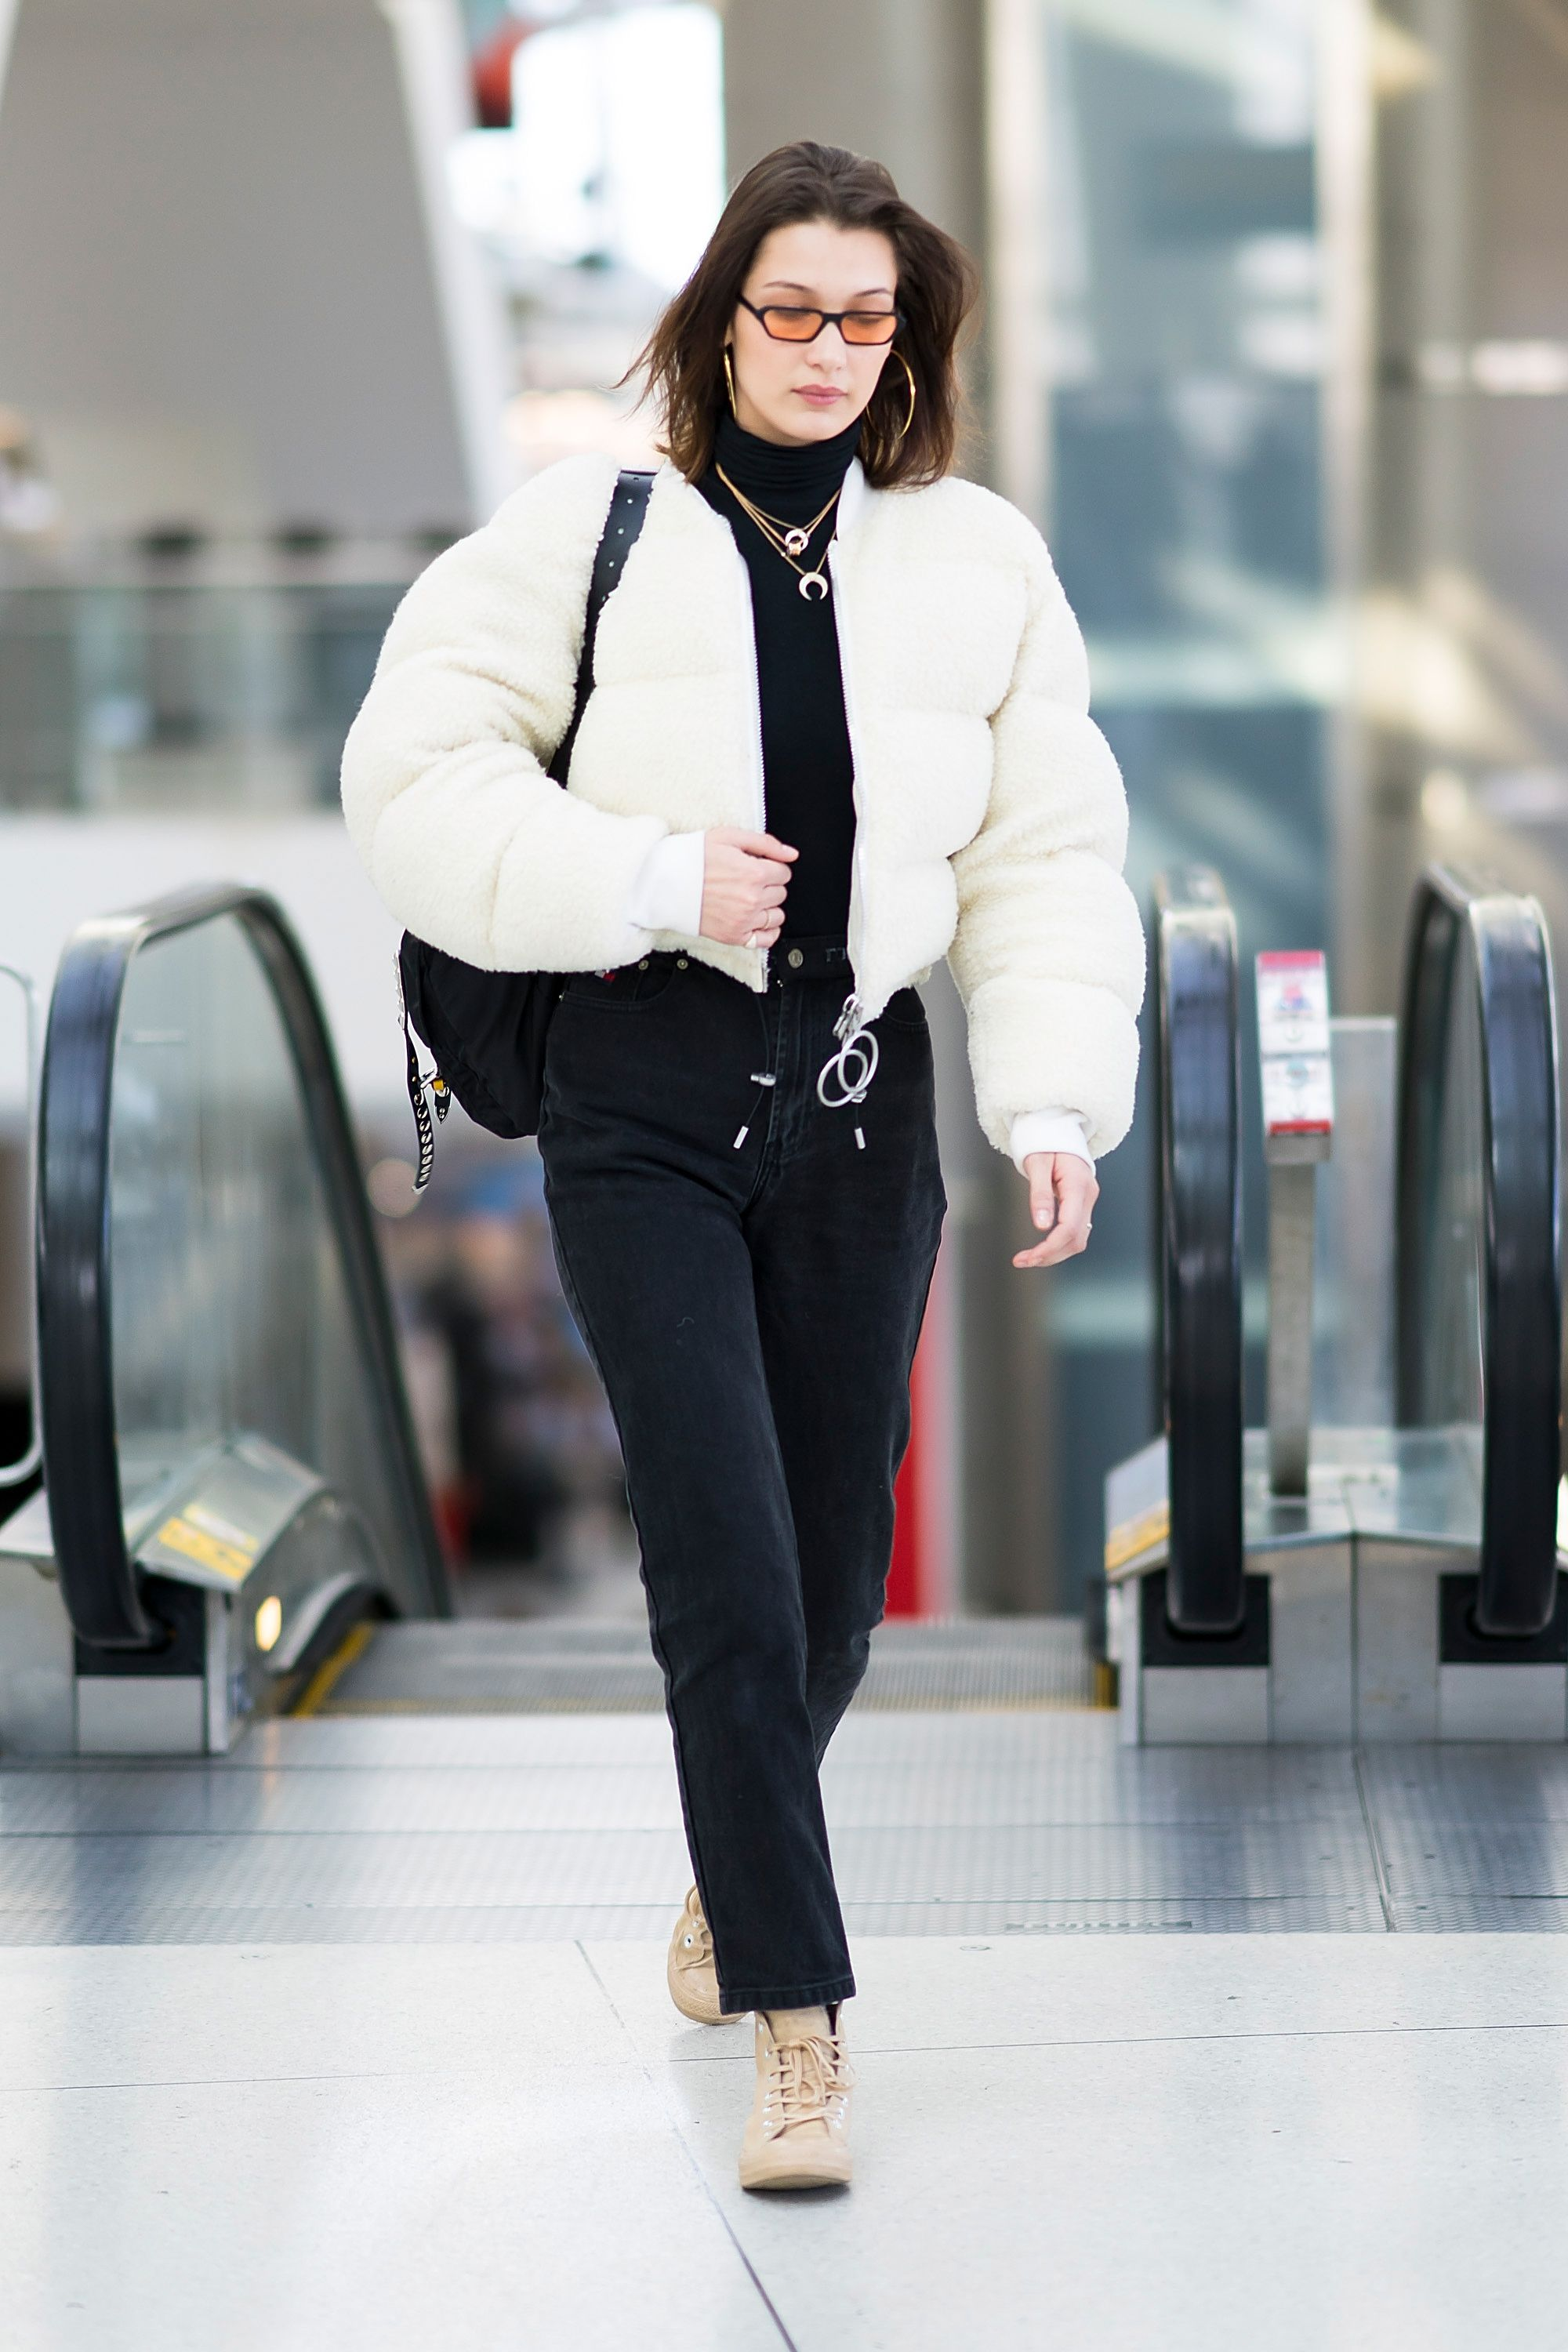 73241d5c3c15 Celebrities Airport Style - Celebs Airport Fashion Photos